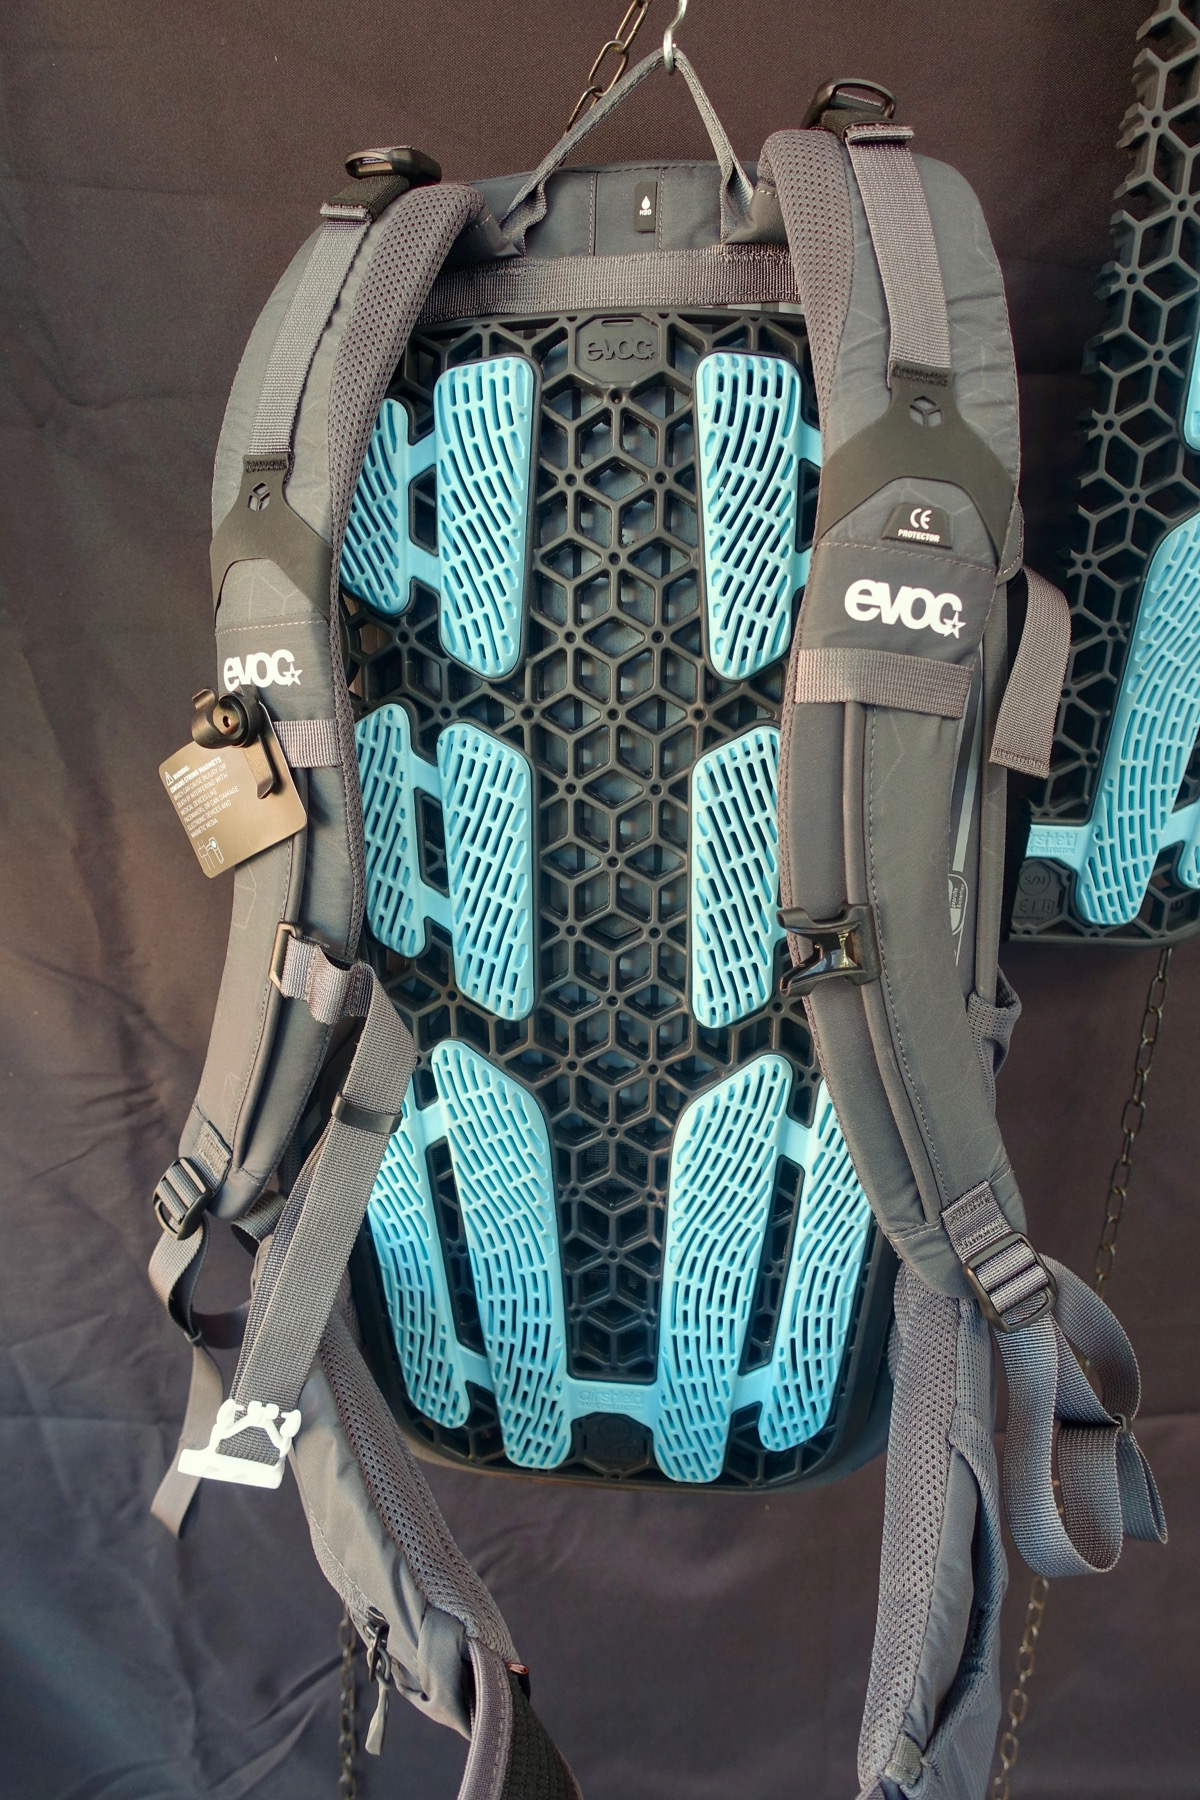 New Evoc Neo Hydration Pack Includes Back Protection, Free Crash Replacement